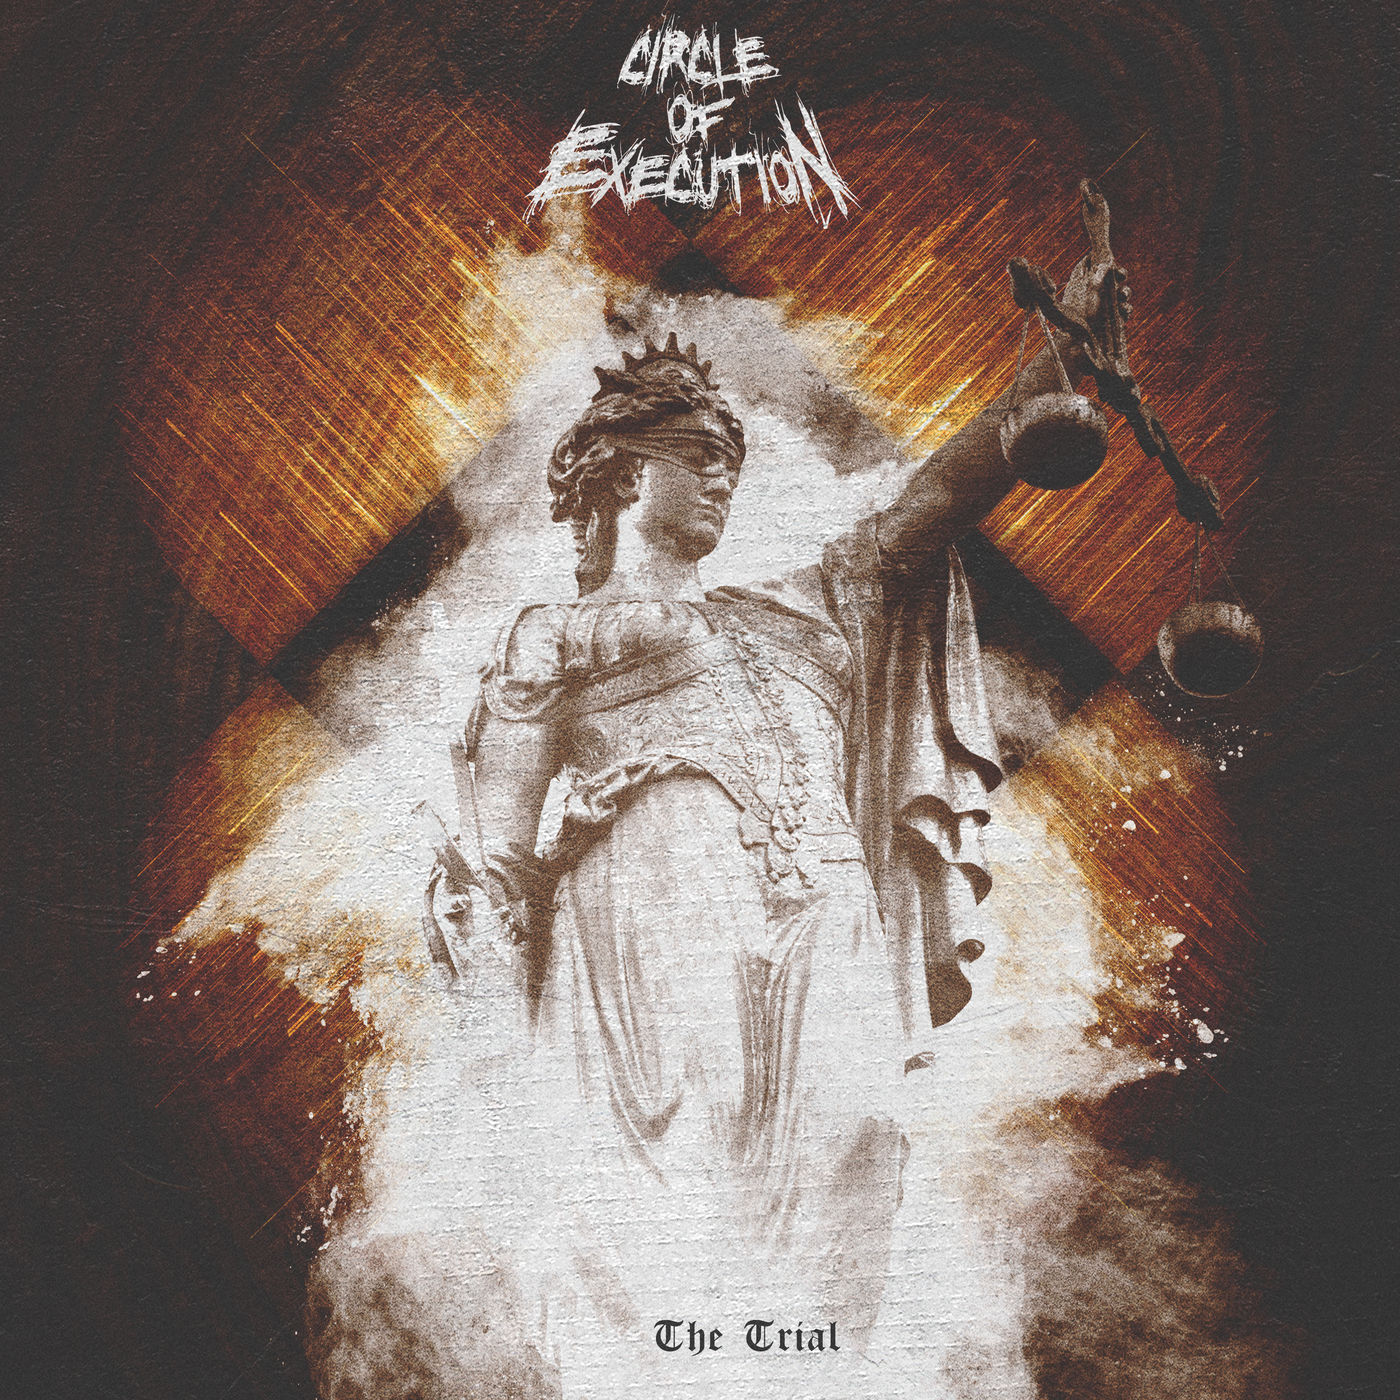 Circle Of Execution - The Trial (2020)